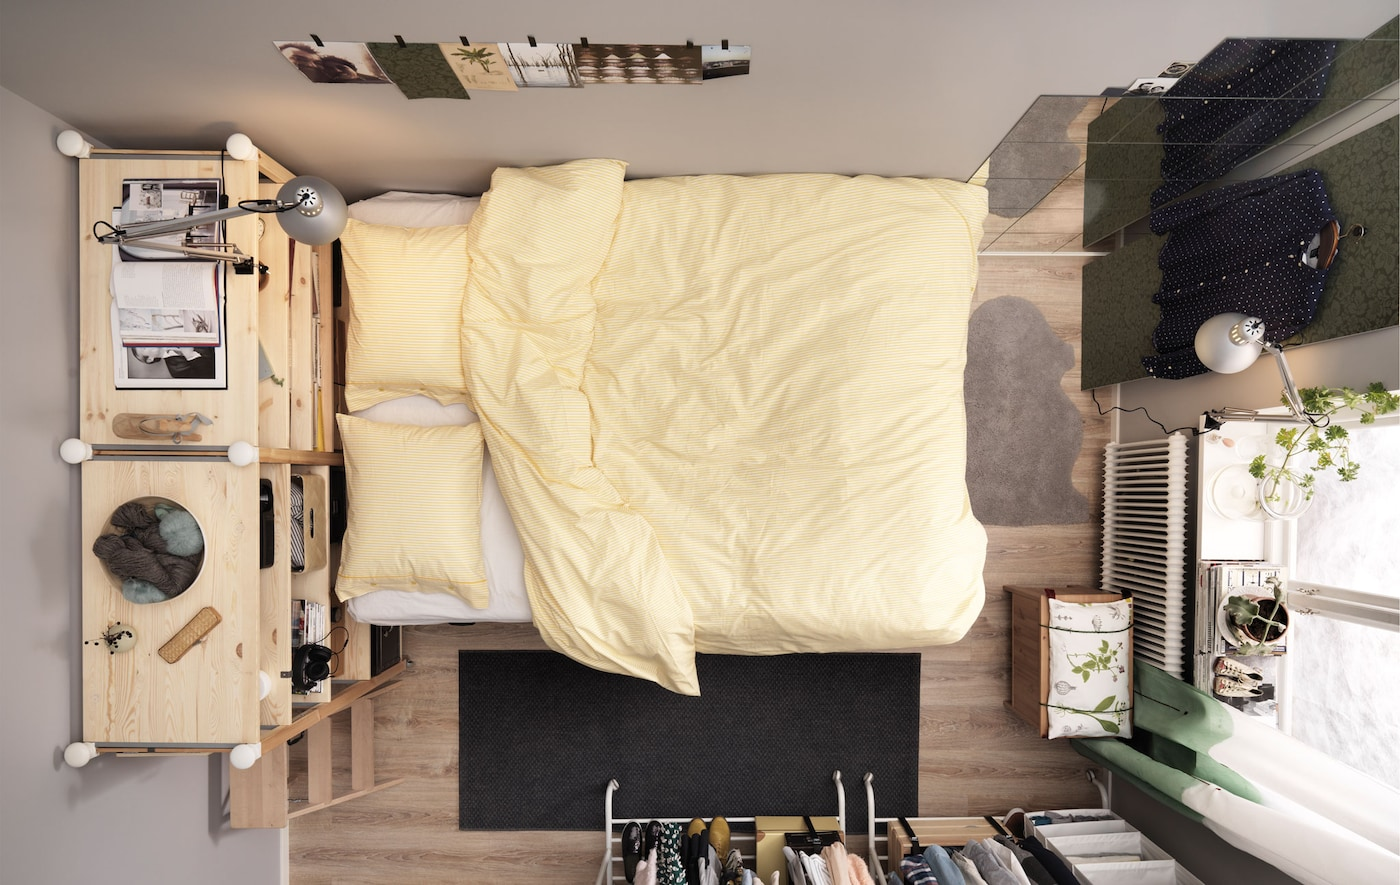 Bird's-eye view of a small bedroom for two with a platform bed and lots of storage.